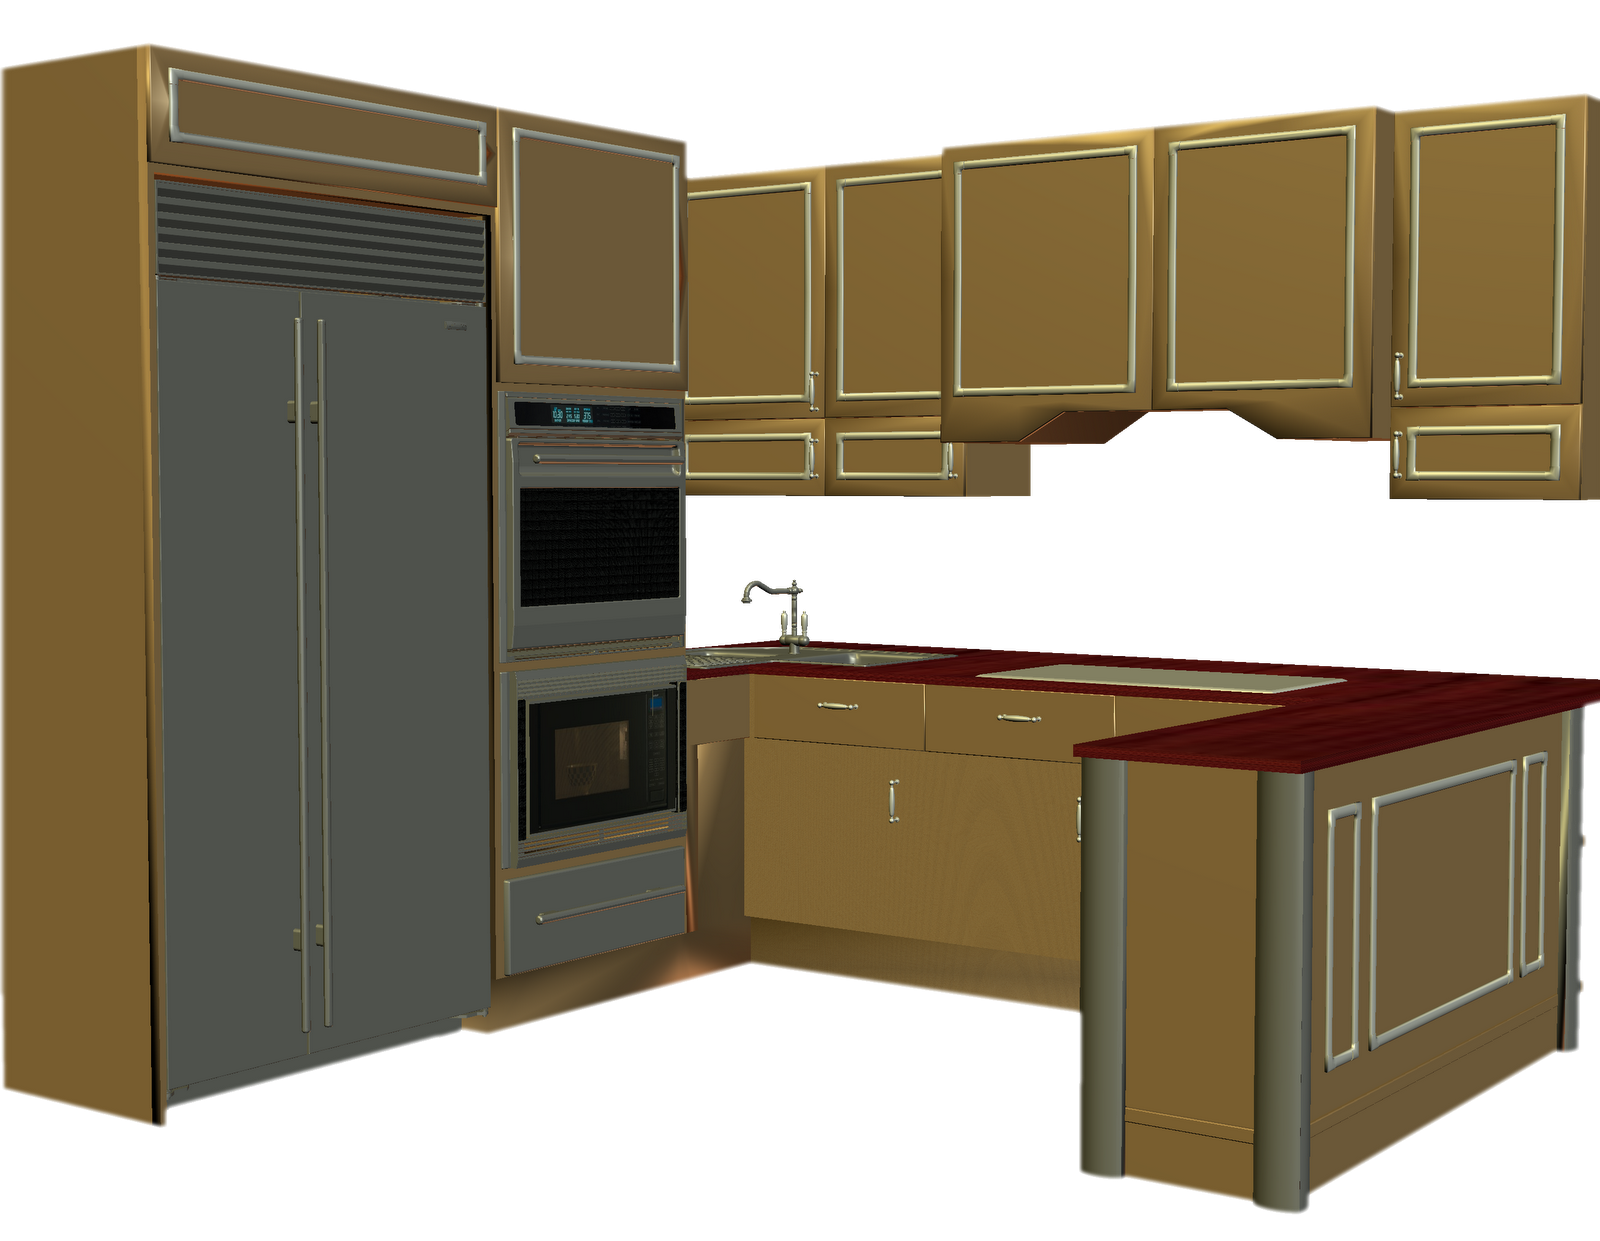 Clip Art Kitchen Clip Art clip art kitchen clipart kid here are some pretty cool and object enjoy